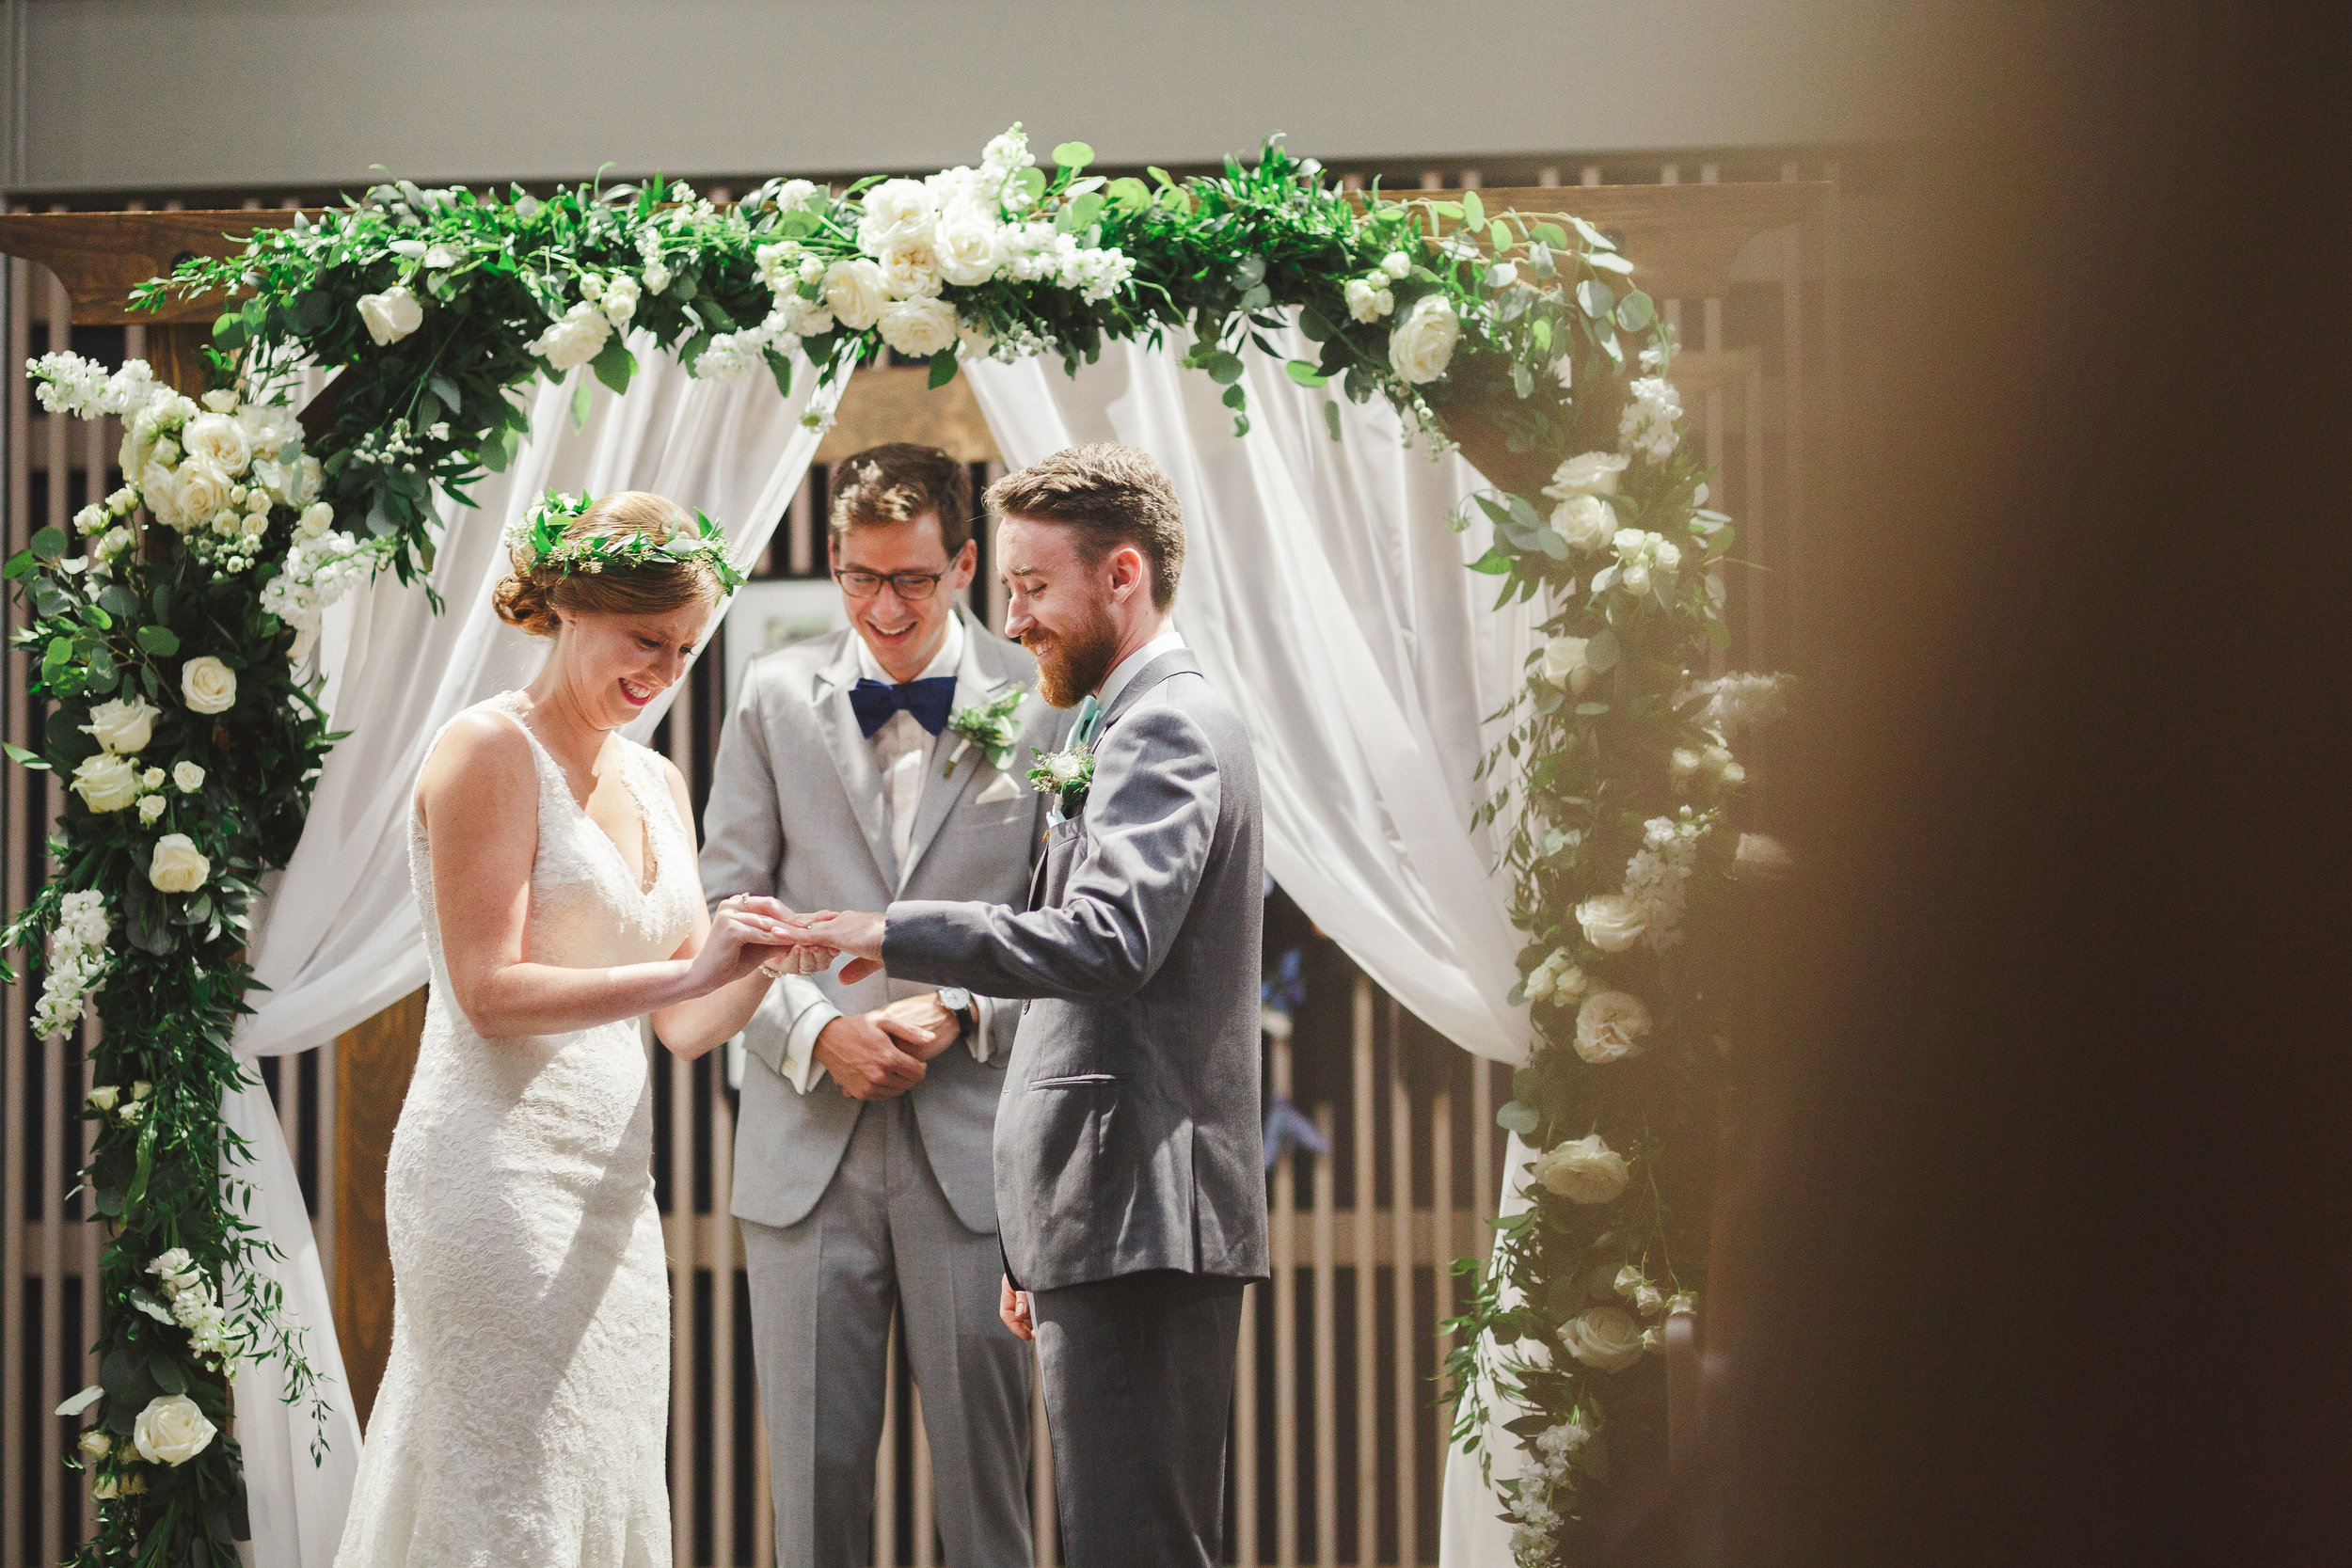 Meghan and Zach were supposed to get married outside, but Mother Nature had other plans. Without hesitation, they let me move their ceremony inside Baker Hall at Norfolk Botanical Garden. It was the most intimate and coziest space you could ever want. Despite the last minute change and the weather, nothing stopped them from living in the moment of their new beginning together.  Photo: Valerie Demo